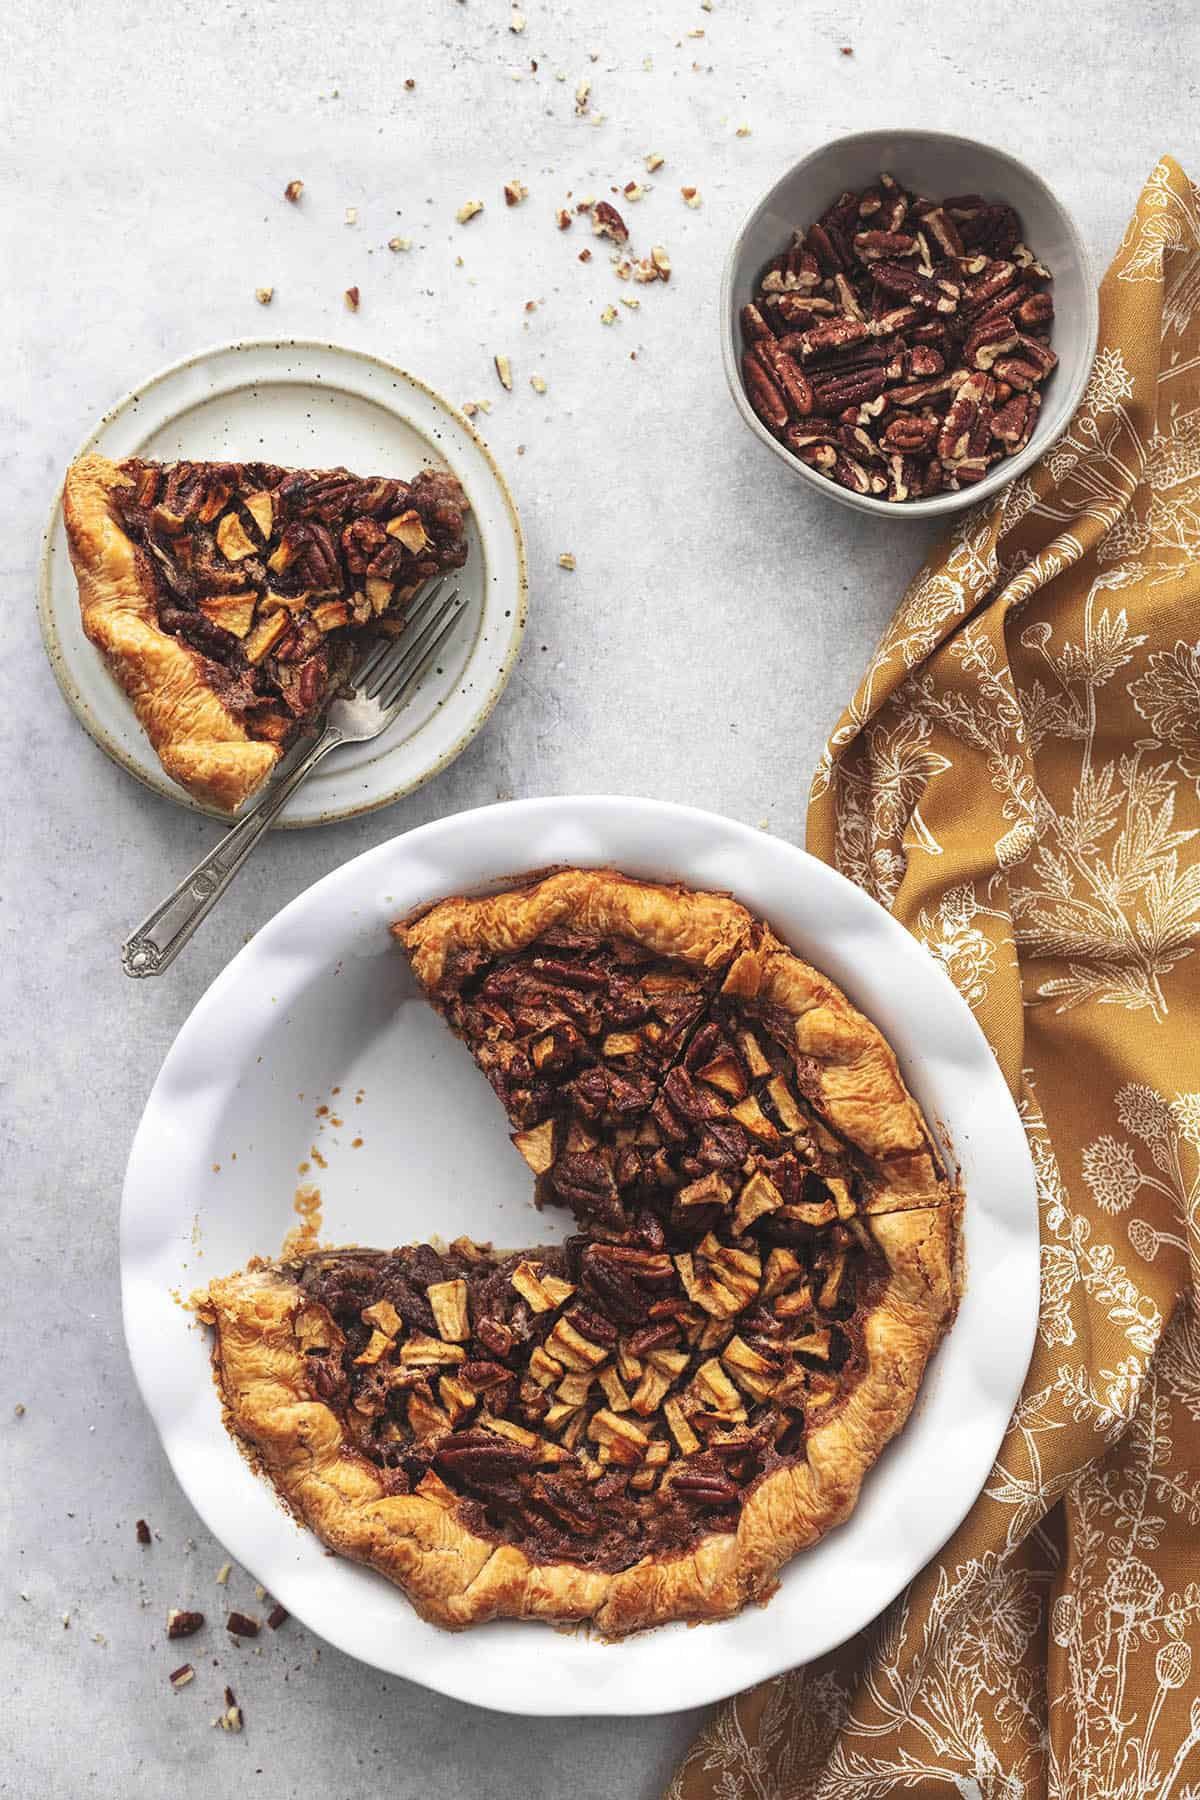 pie slice on plate beside remaining pie in dish with napkin and bowl of pecans